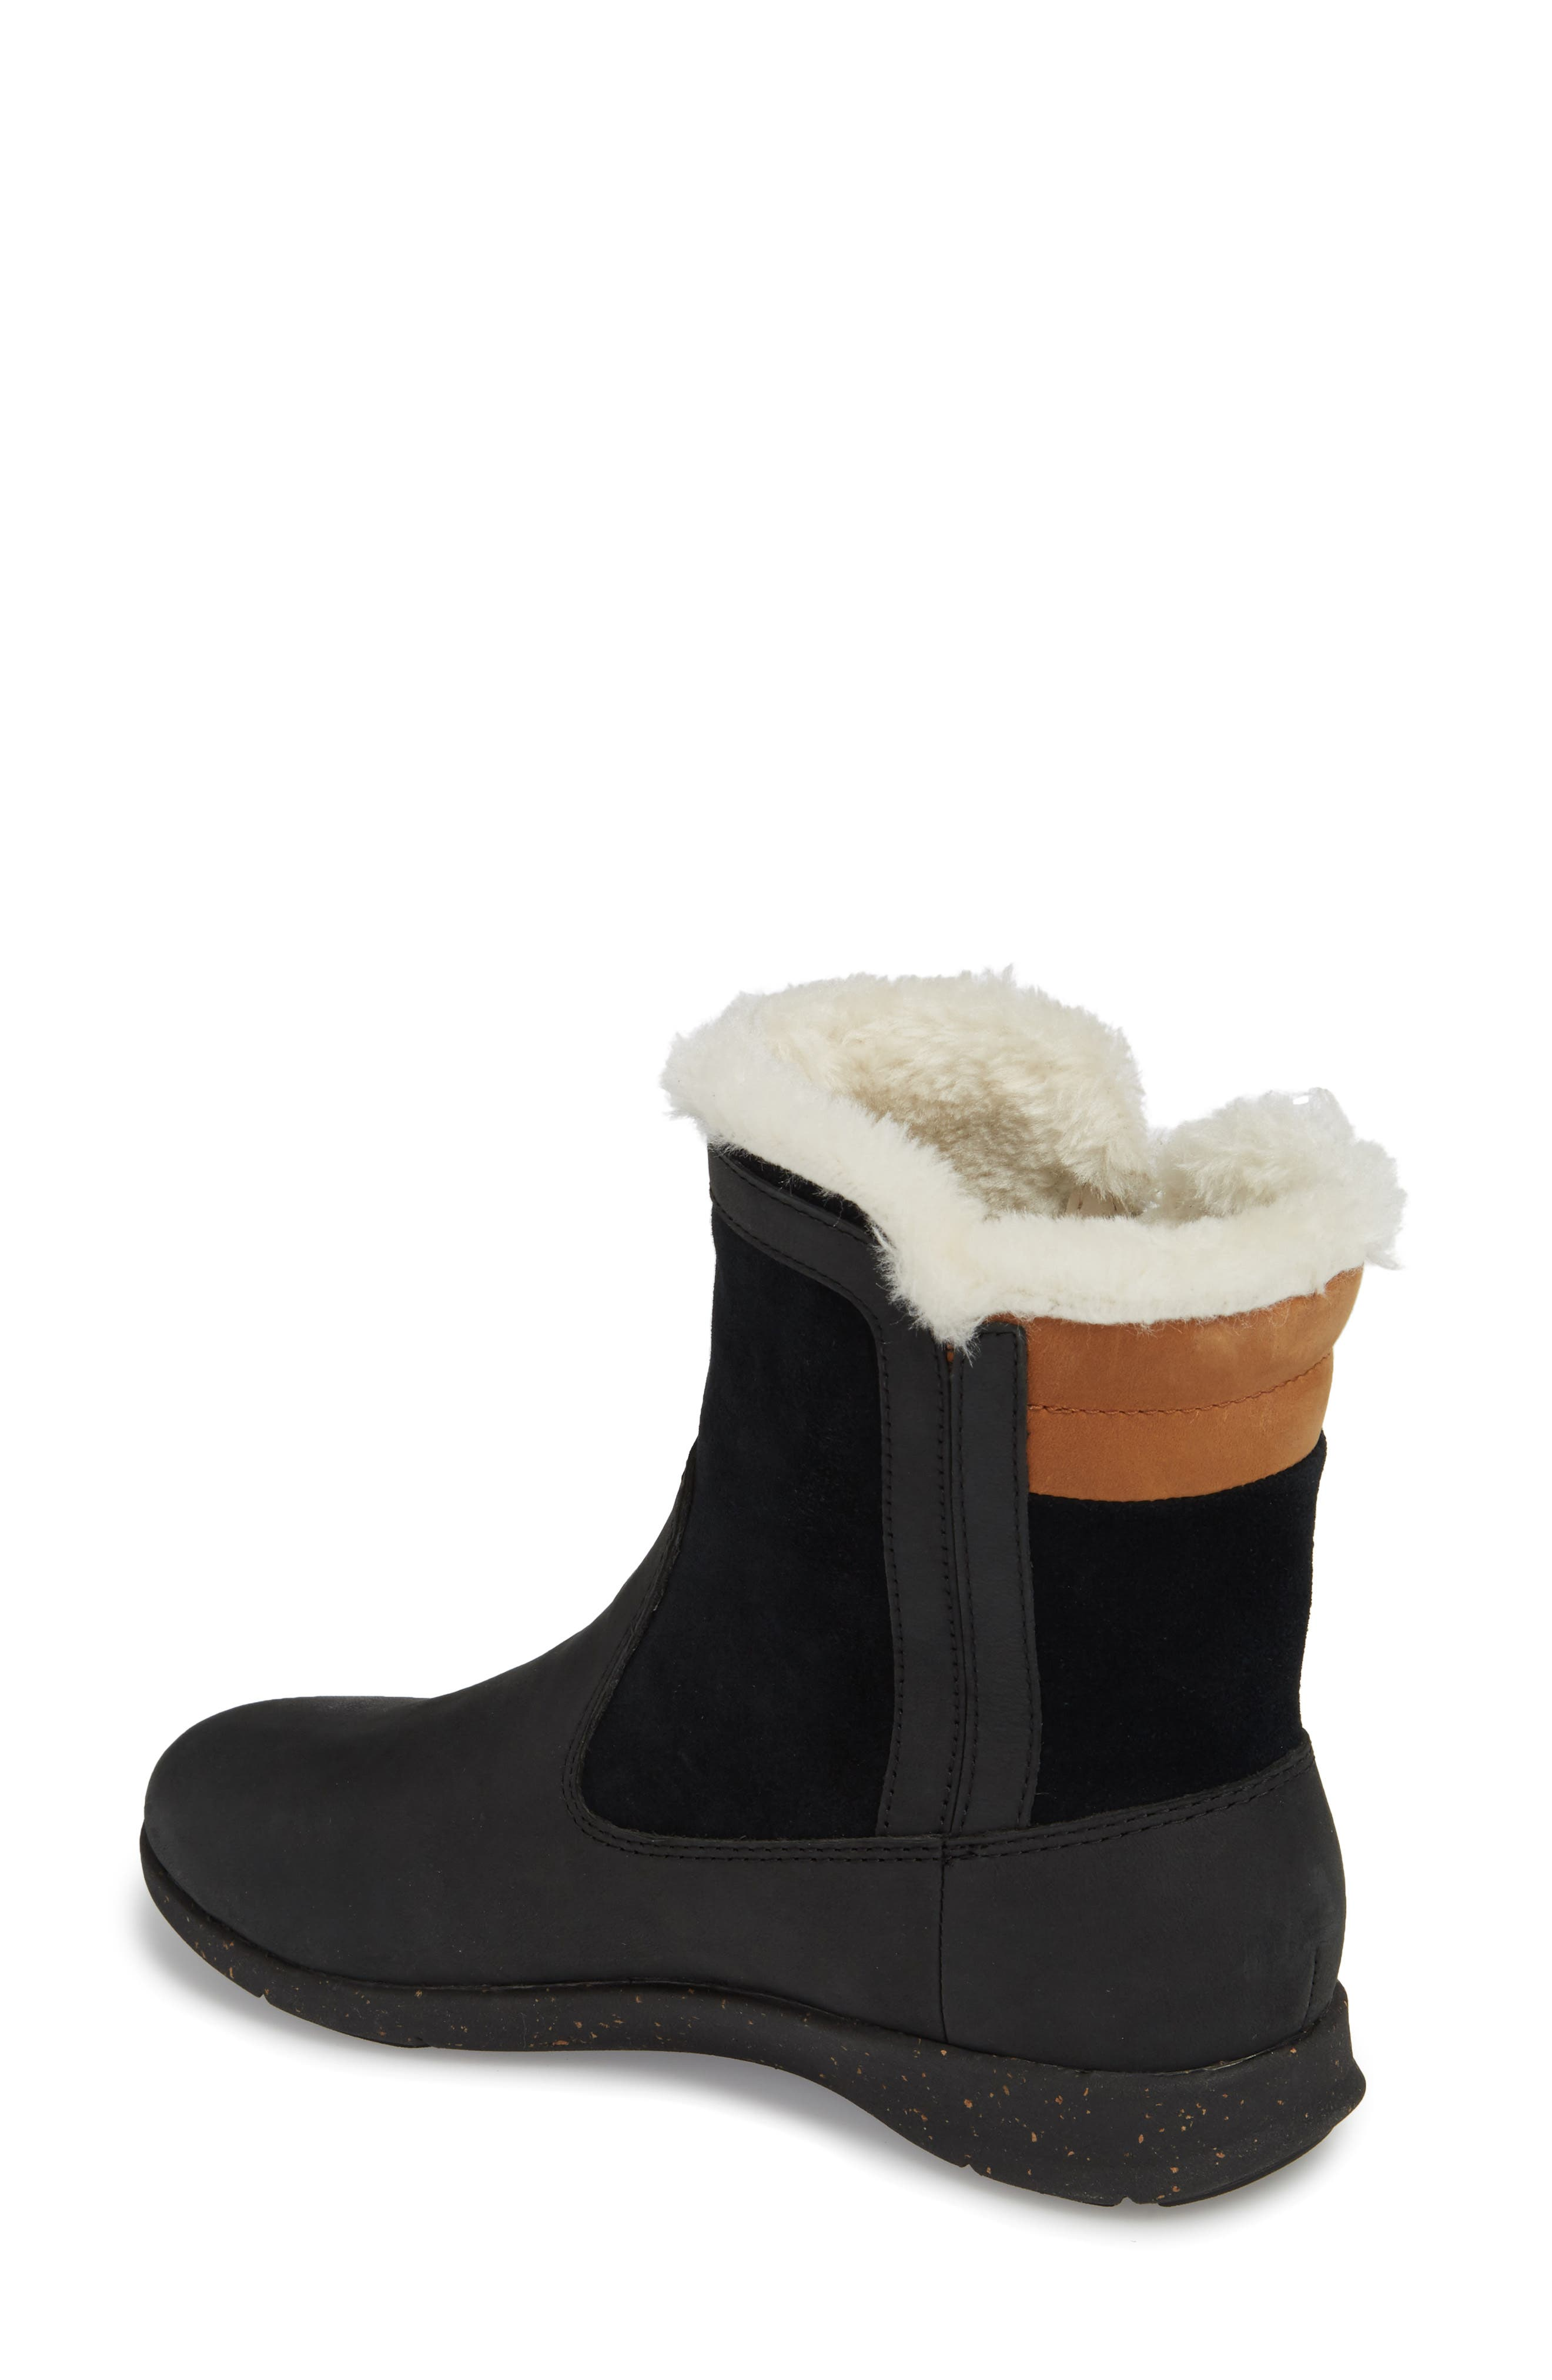 Juniper Faux Fur Lined Waterproof Bootie,                             Alternate thumbnail 2, color,                             Black Leather